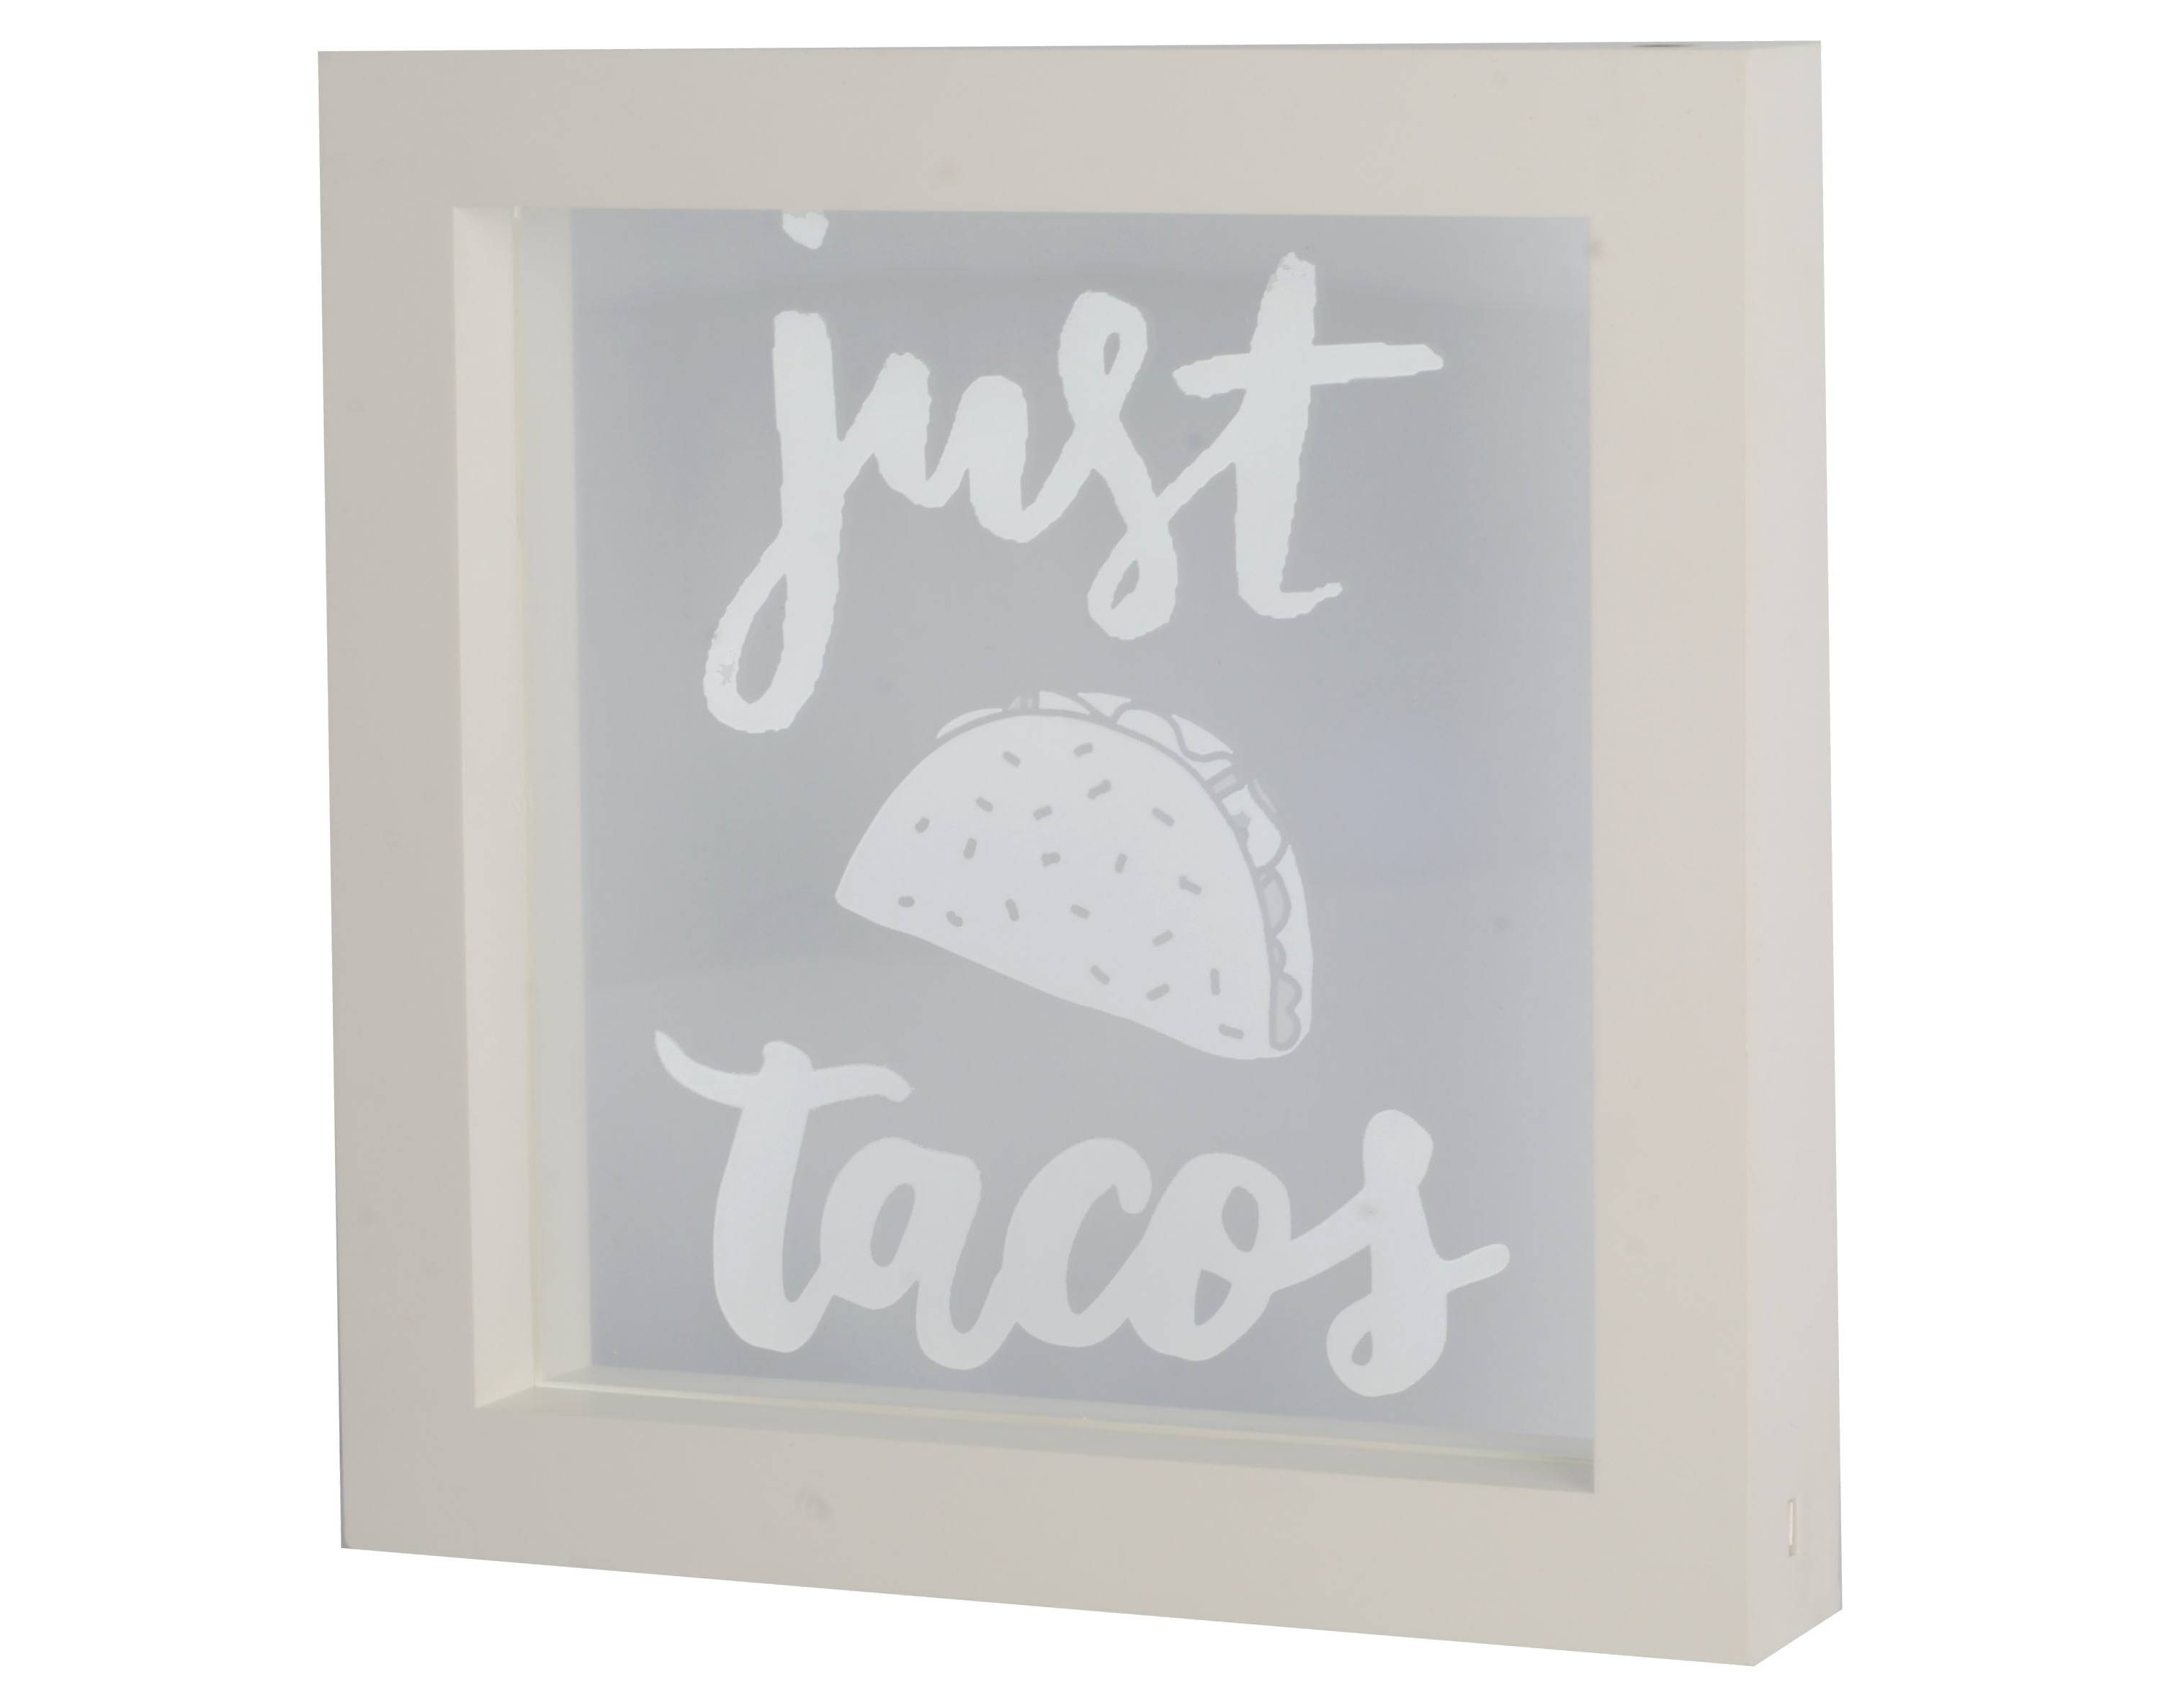 taco decor light taco tuesday night dinner party